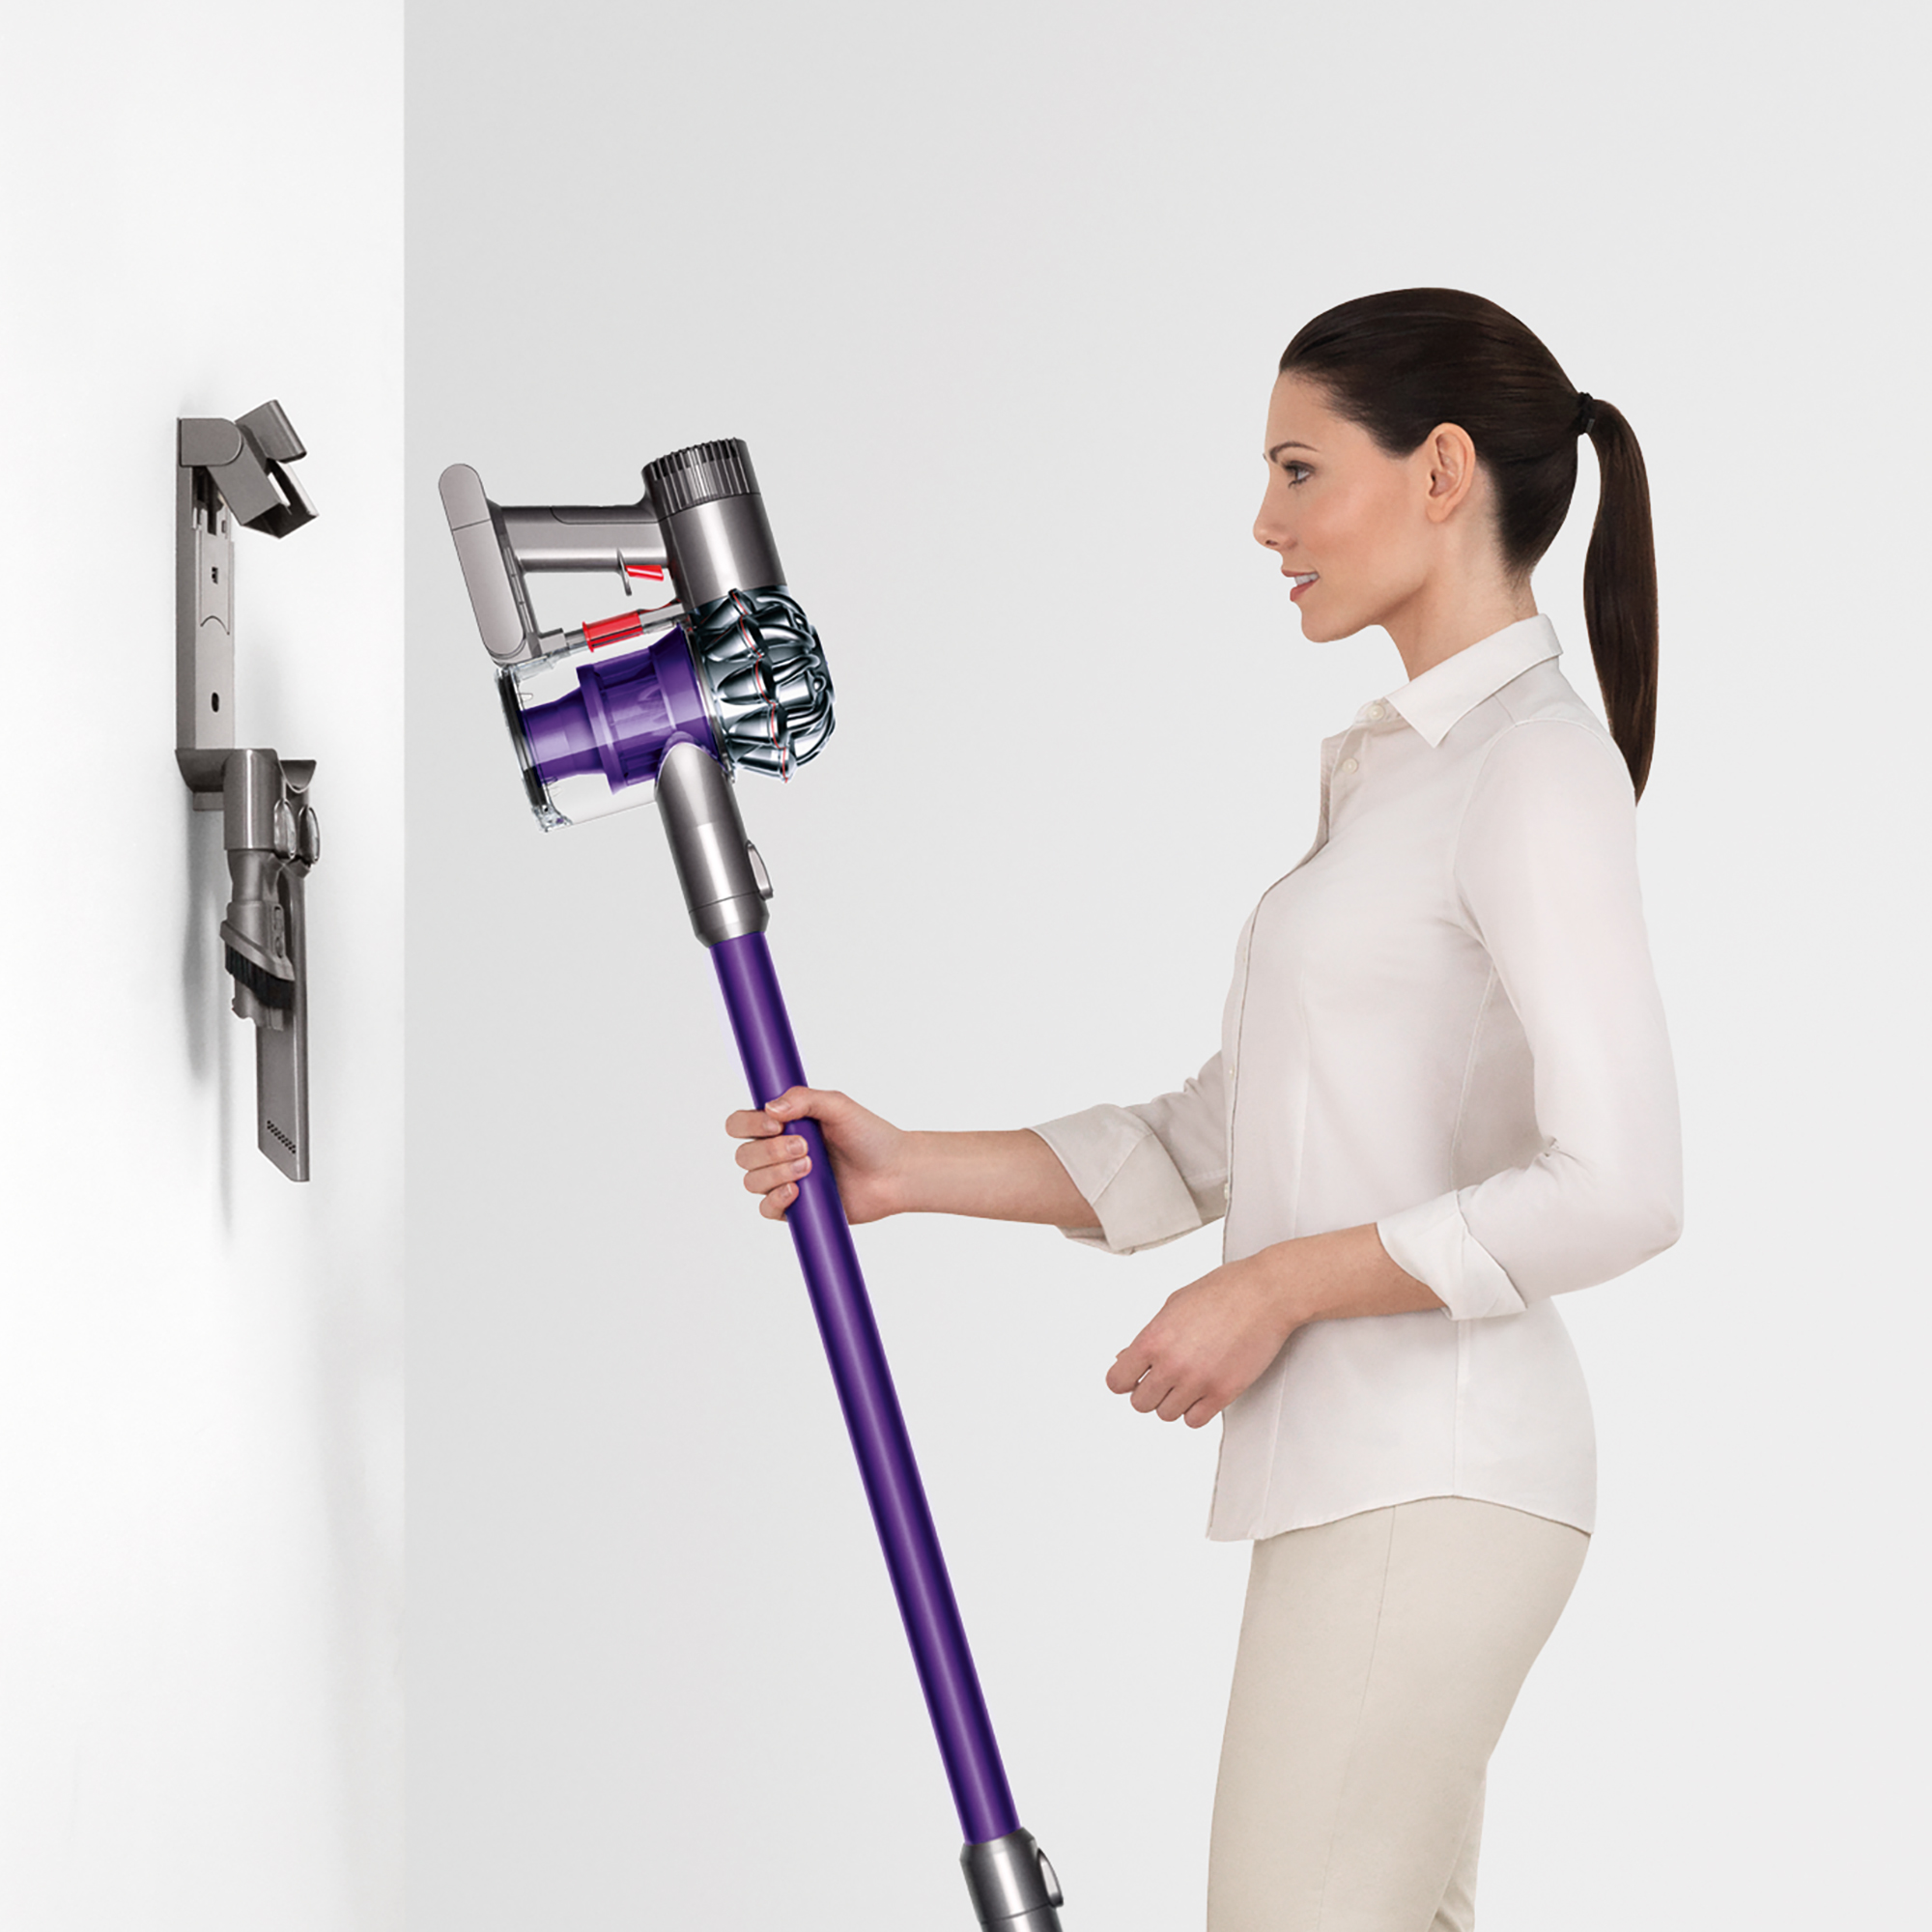 Dyson-V6-Animal-Cordless-Vacuum-Refurbished thumbnail 6